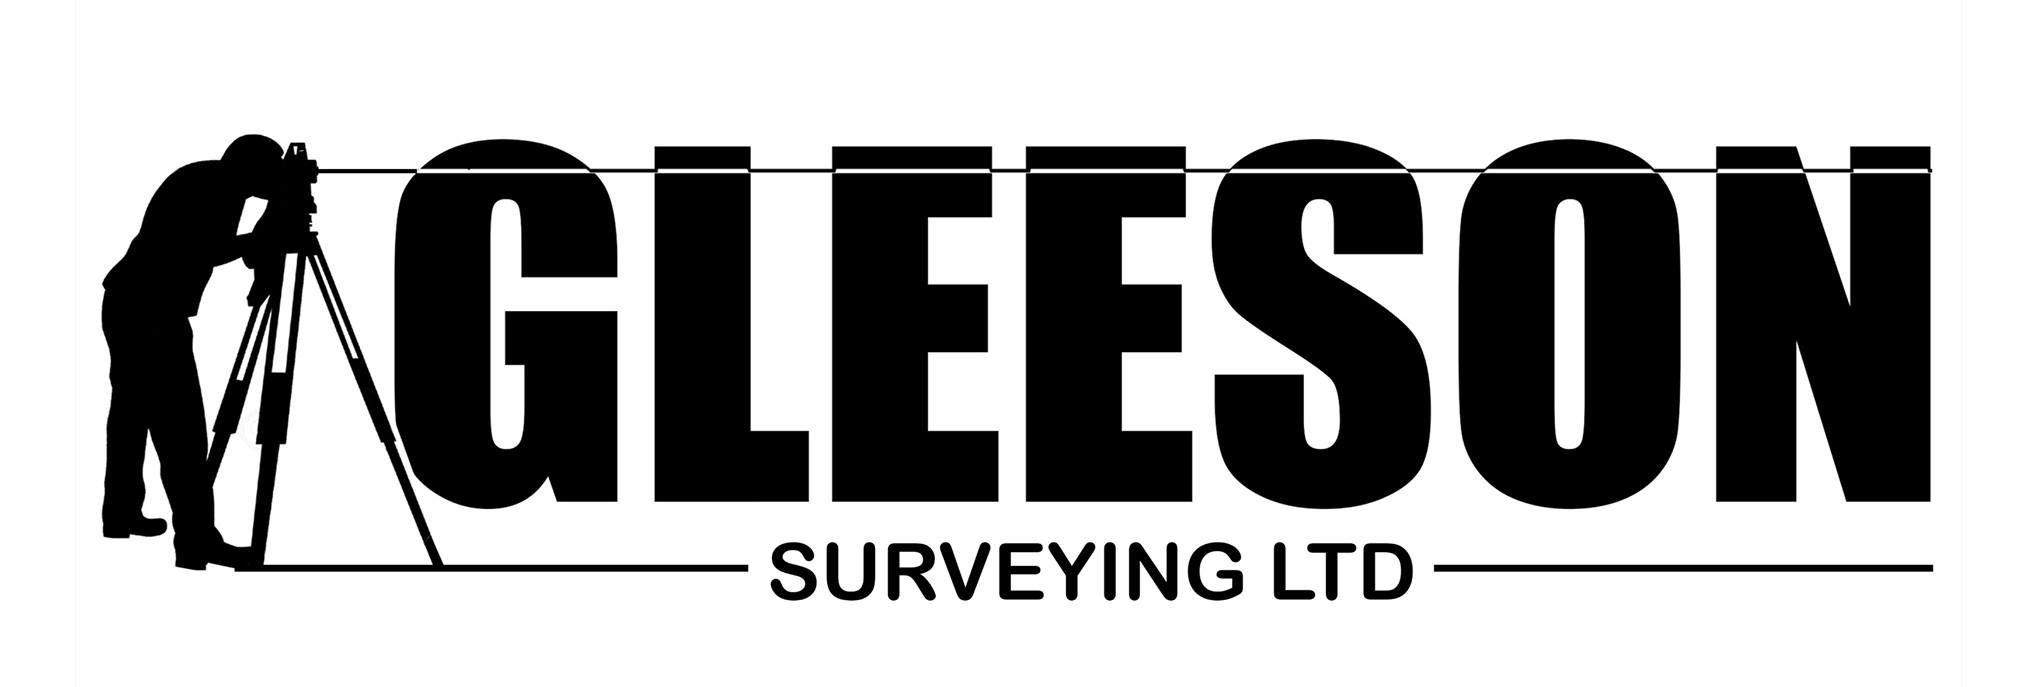 Gleesons Surveying Ltd.